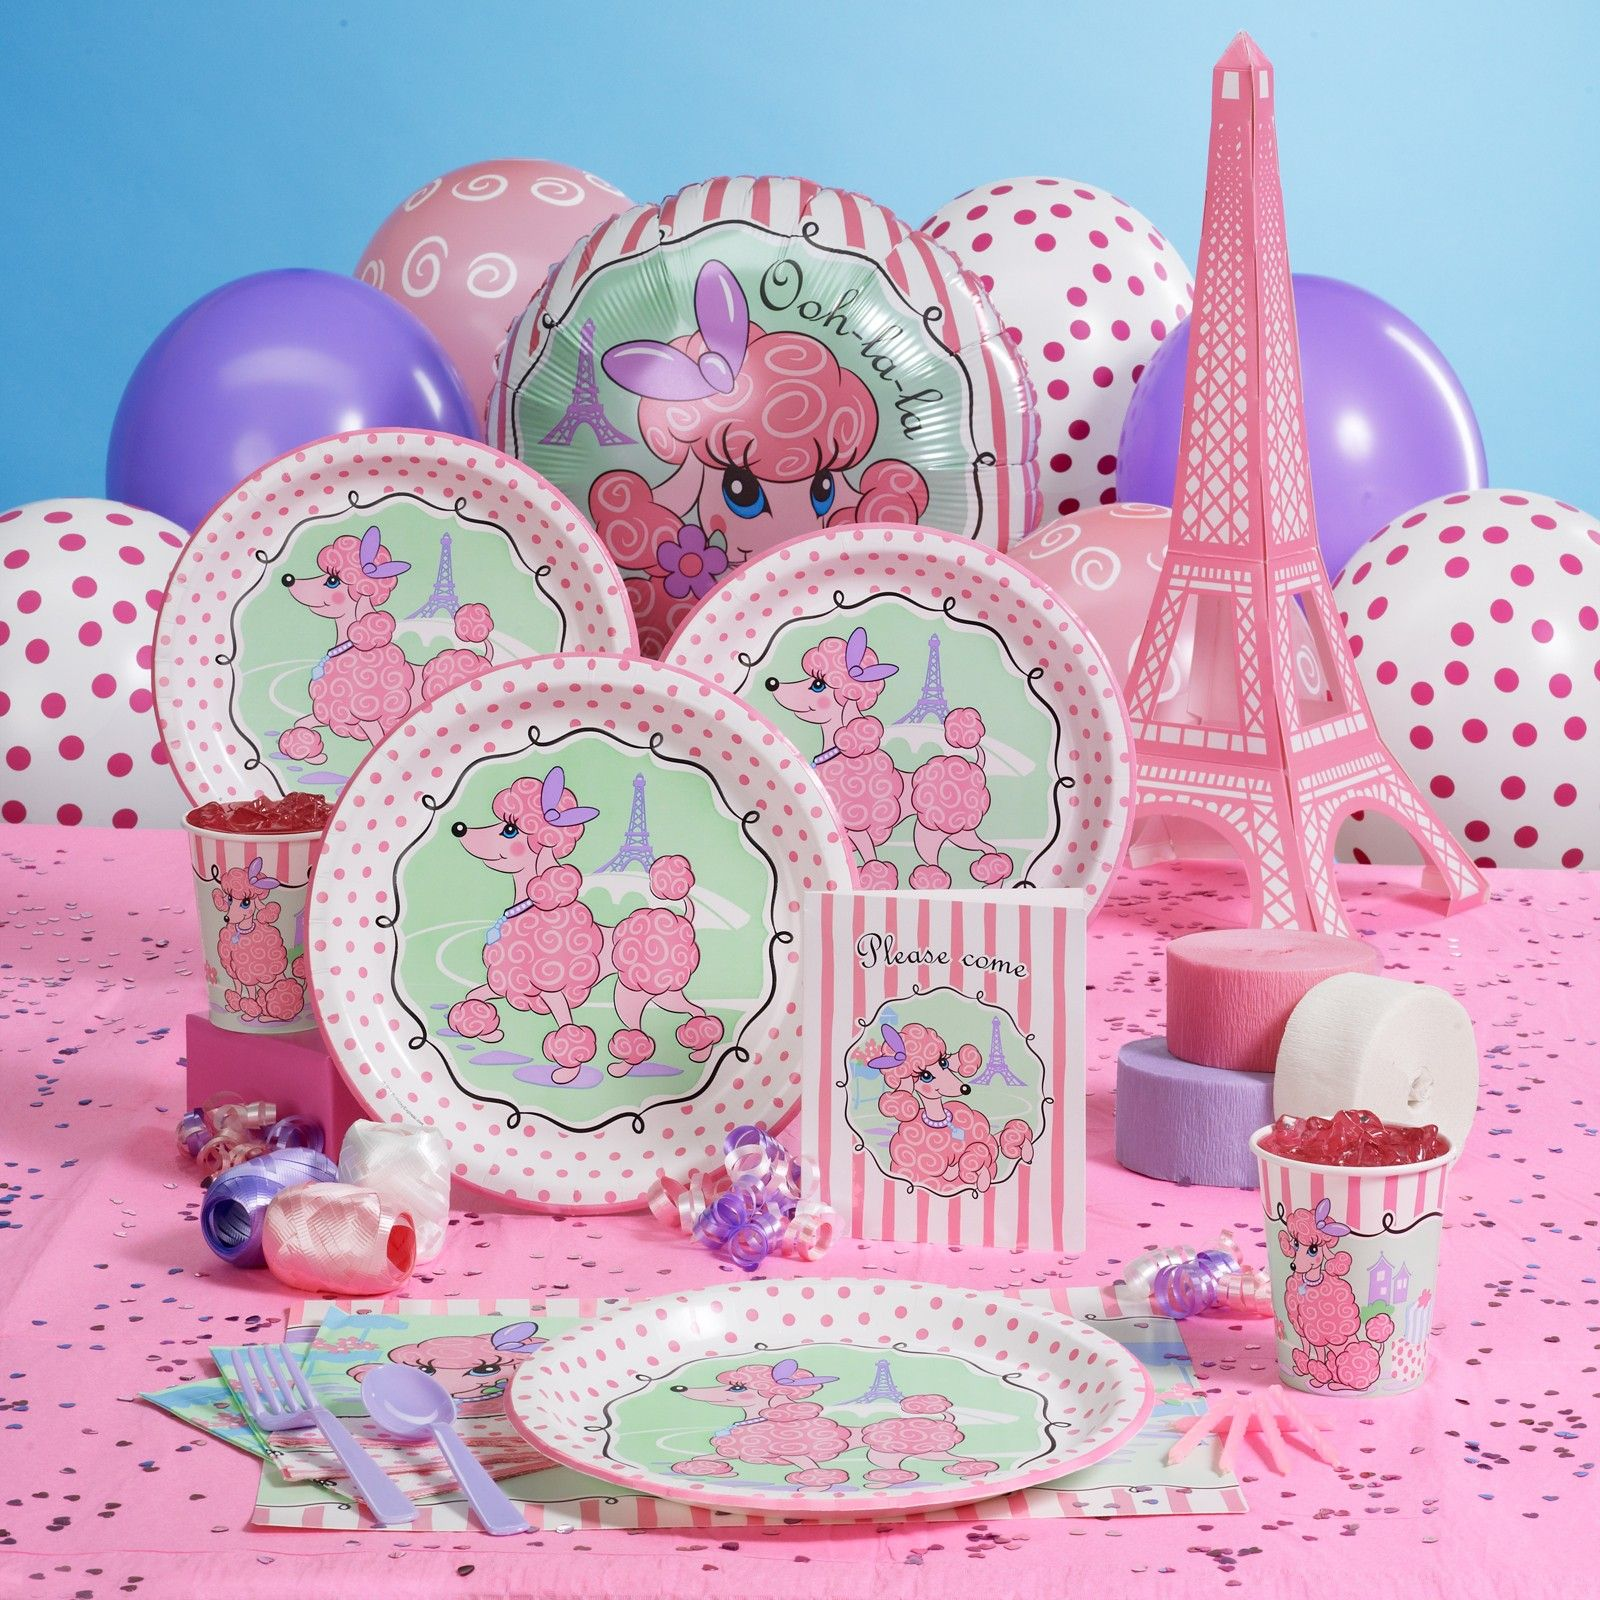 Pink Poodle in Paris...totally Millie's 2nd birthday theme